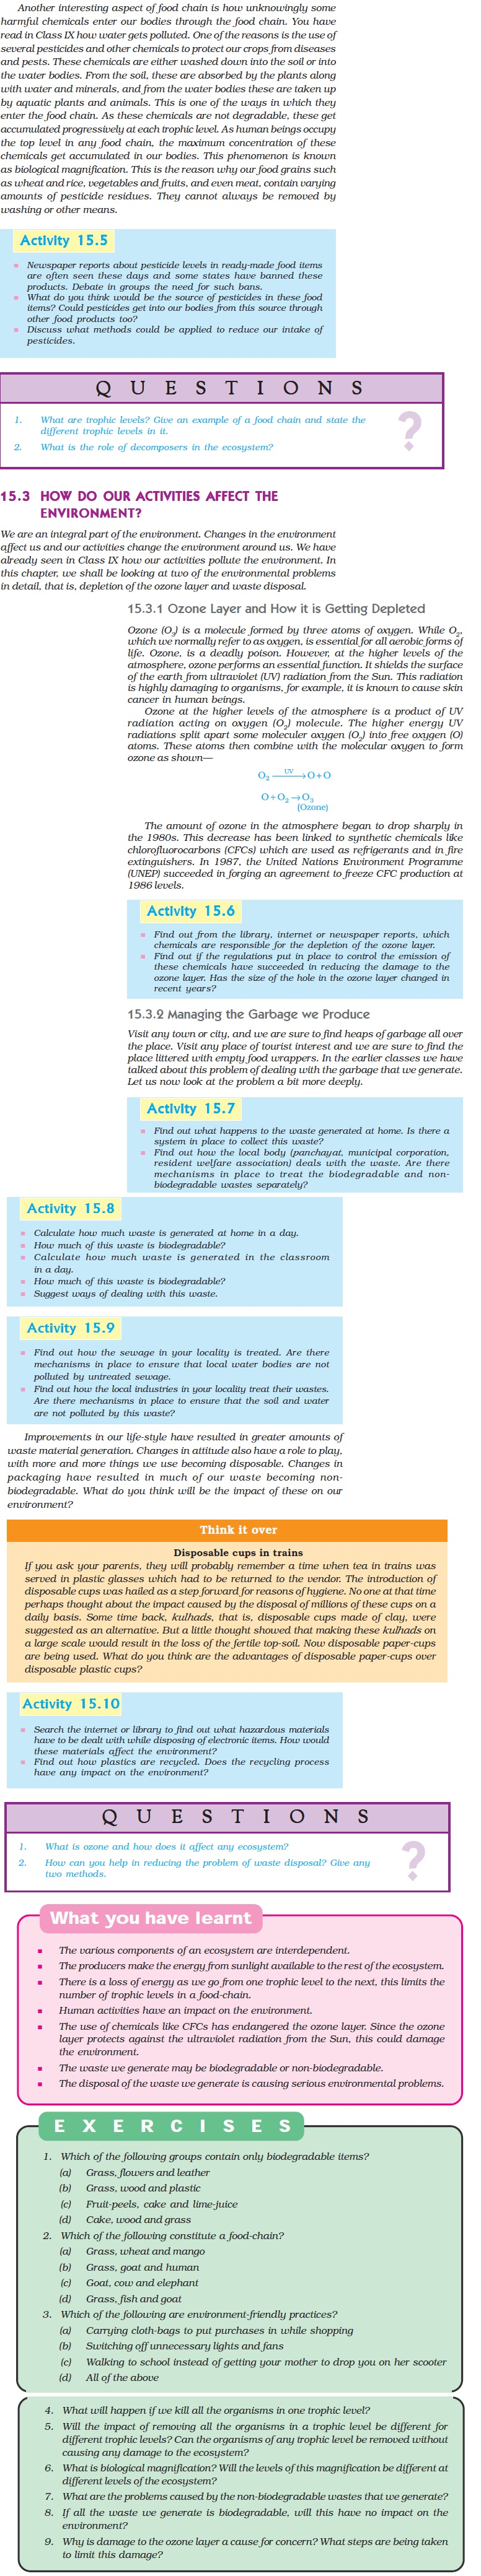 NCERT Class X Science Chapter 15 - Our Environment